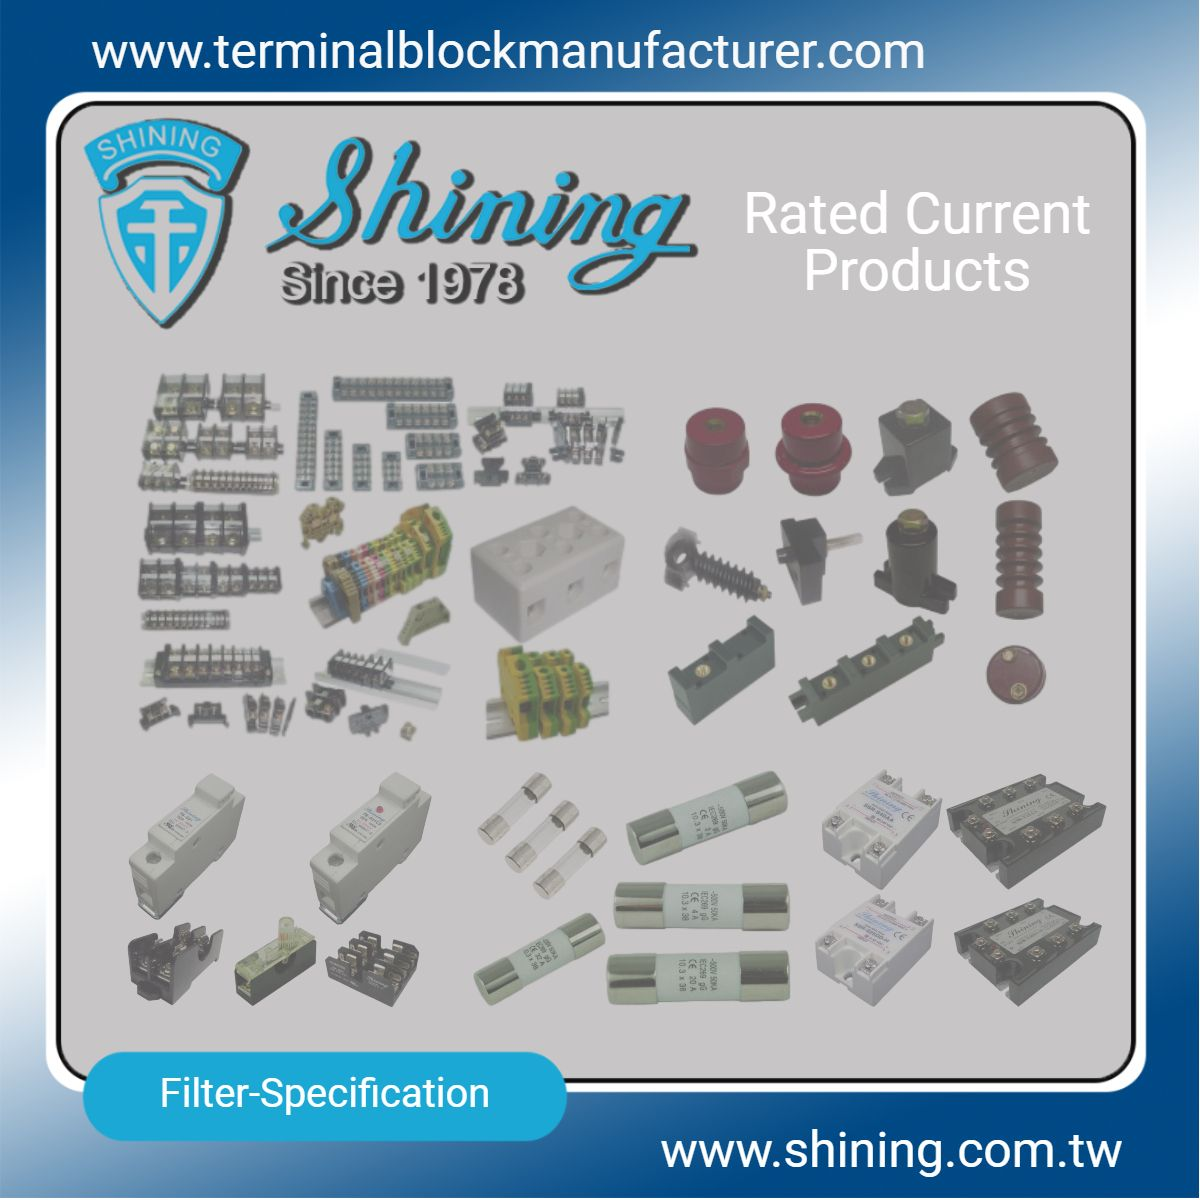 Rated Current Products